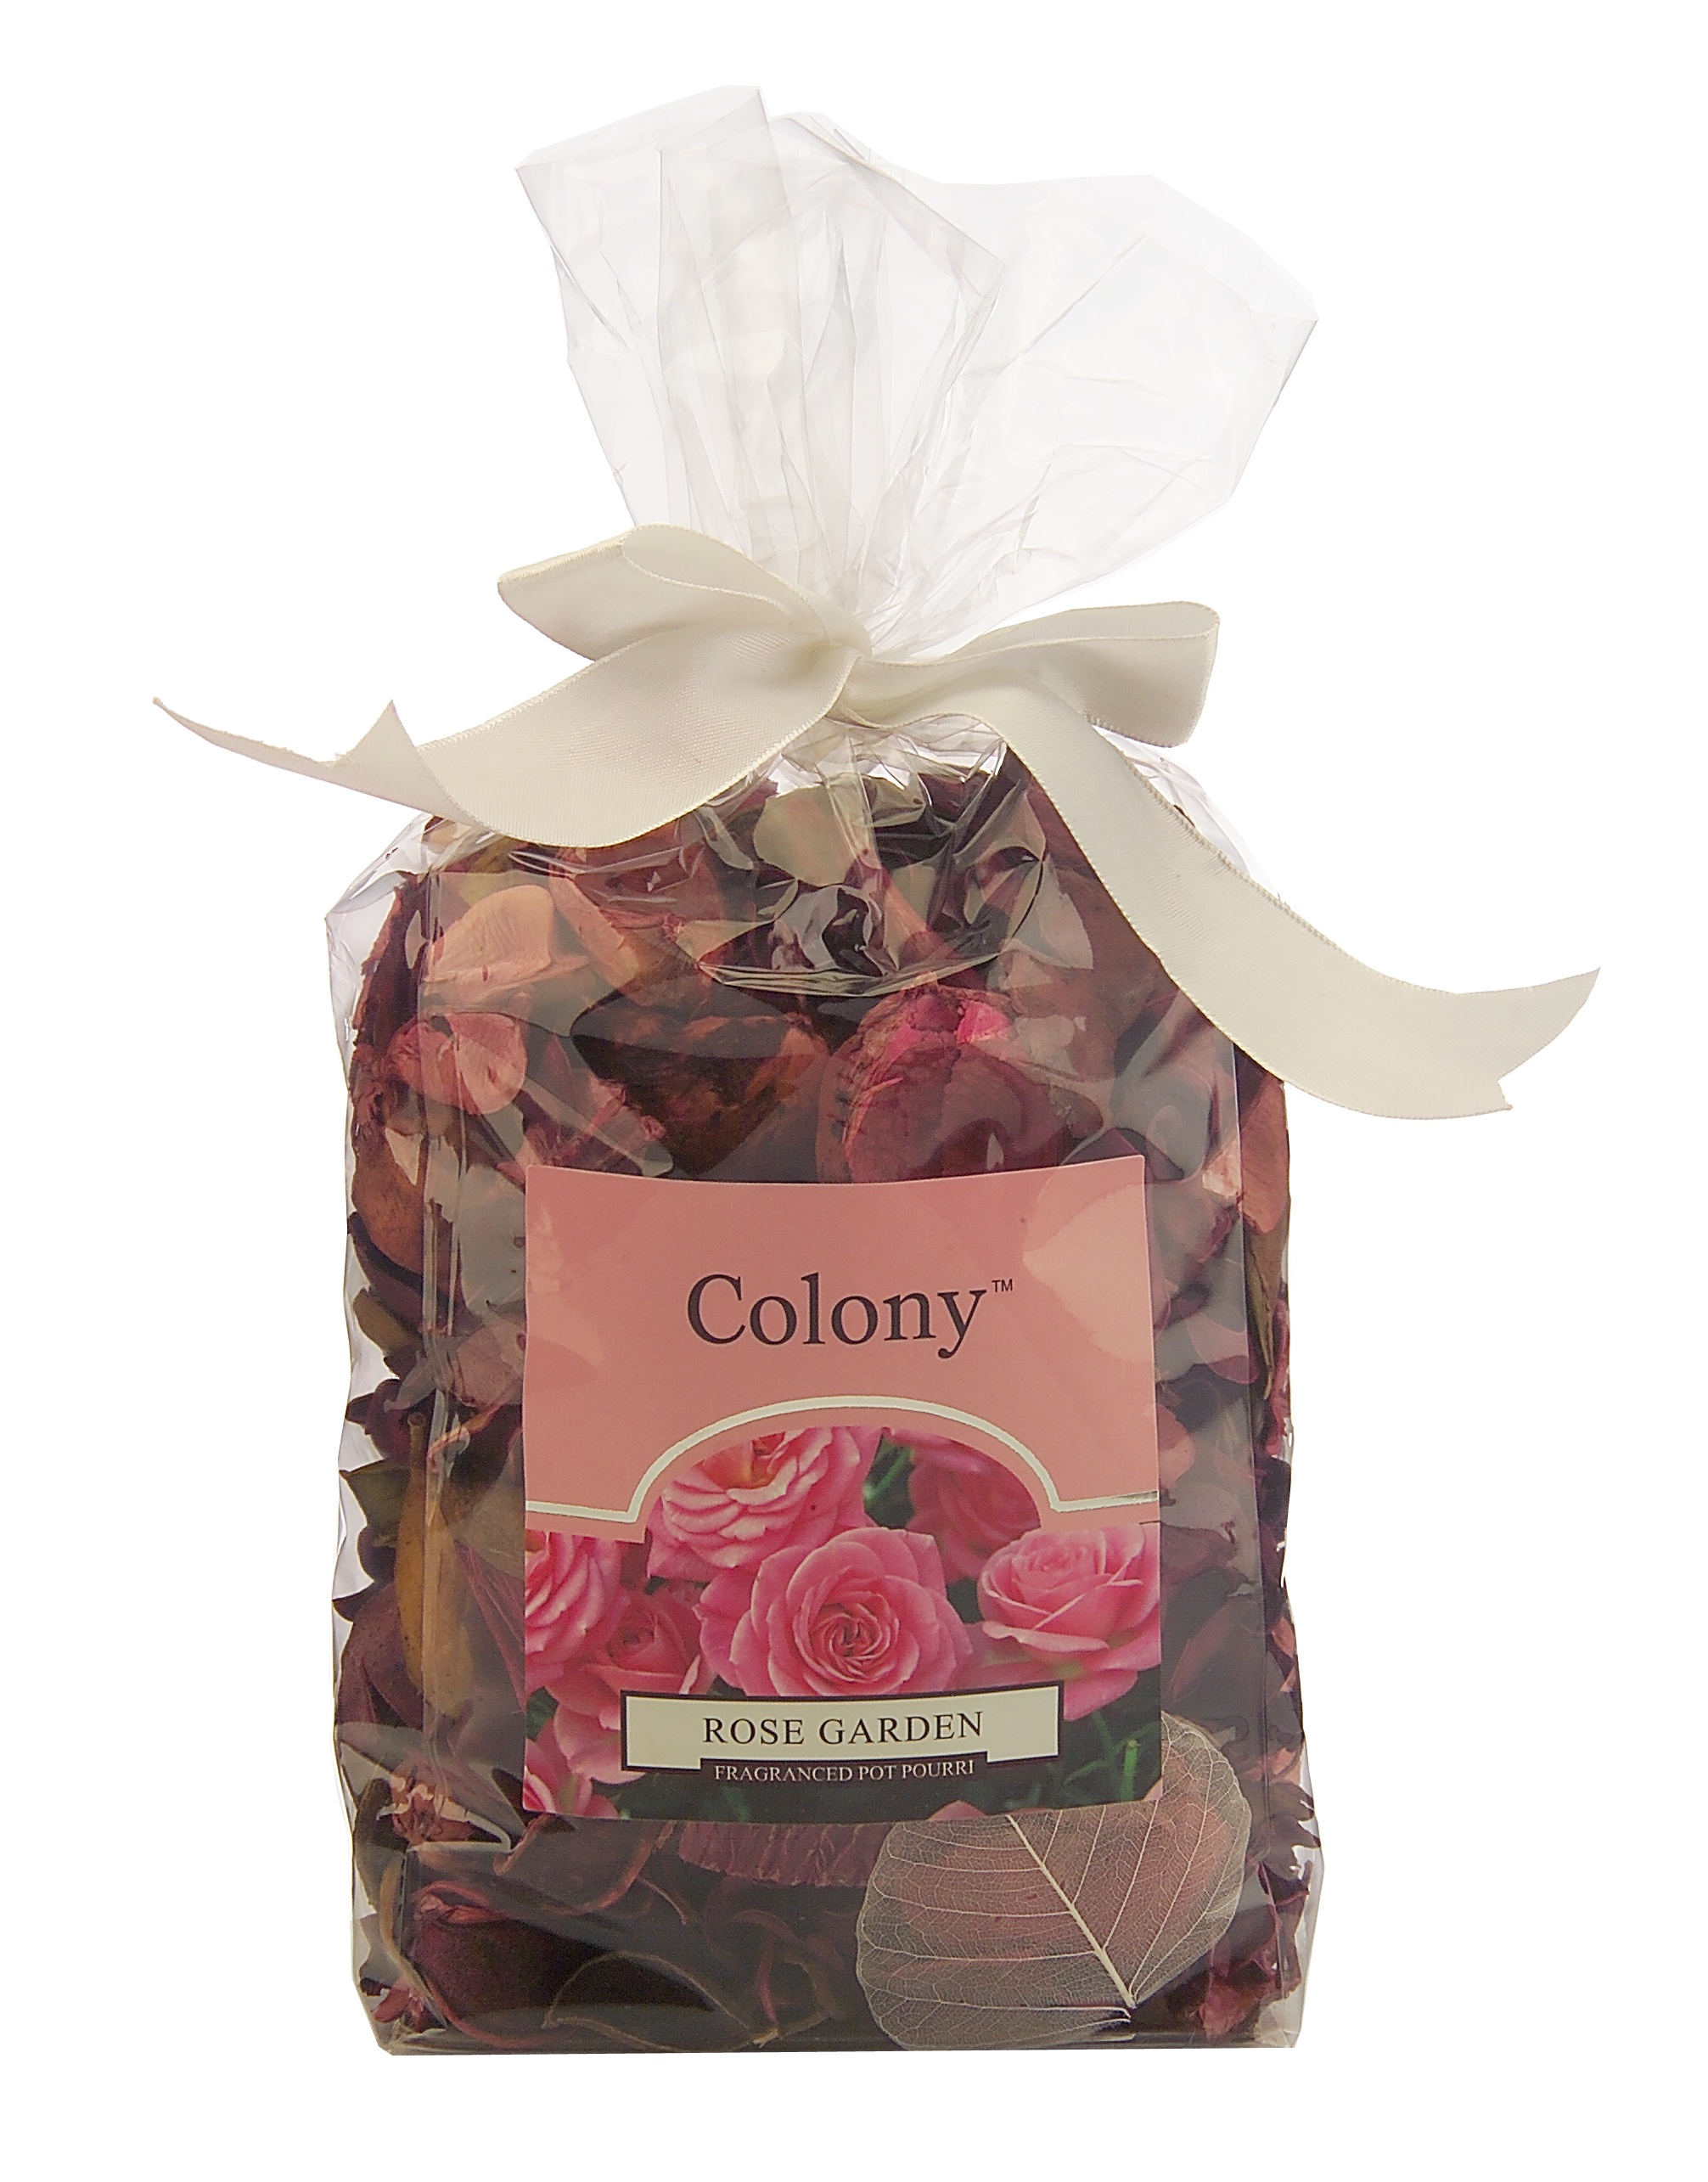 colony rose garden pot pourri scented candles and home fragrance. Black Bedroom Furniture Sets. Home Design Ideas